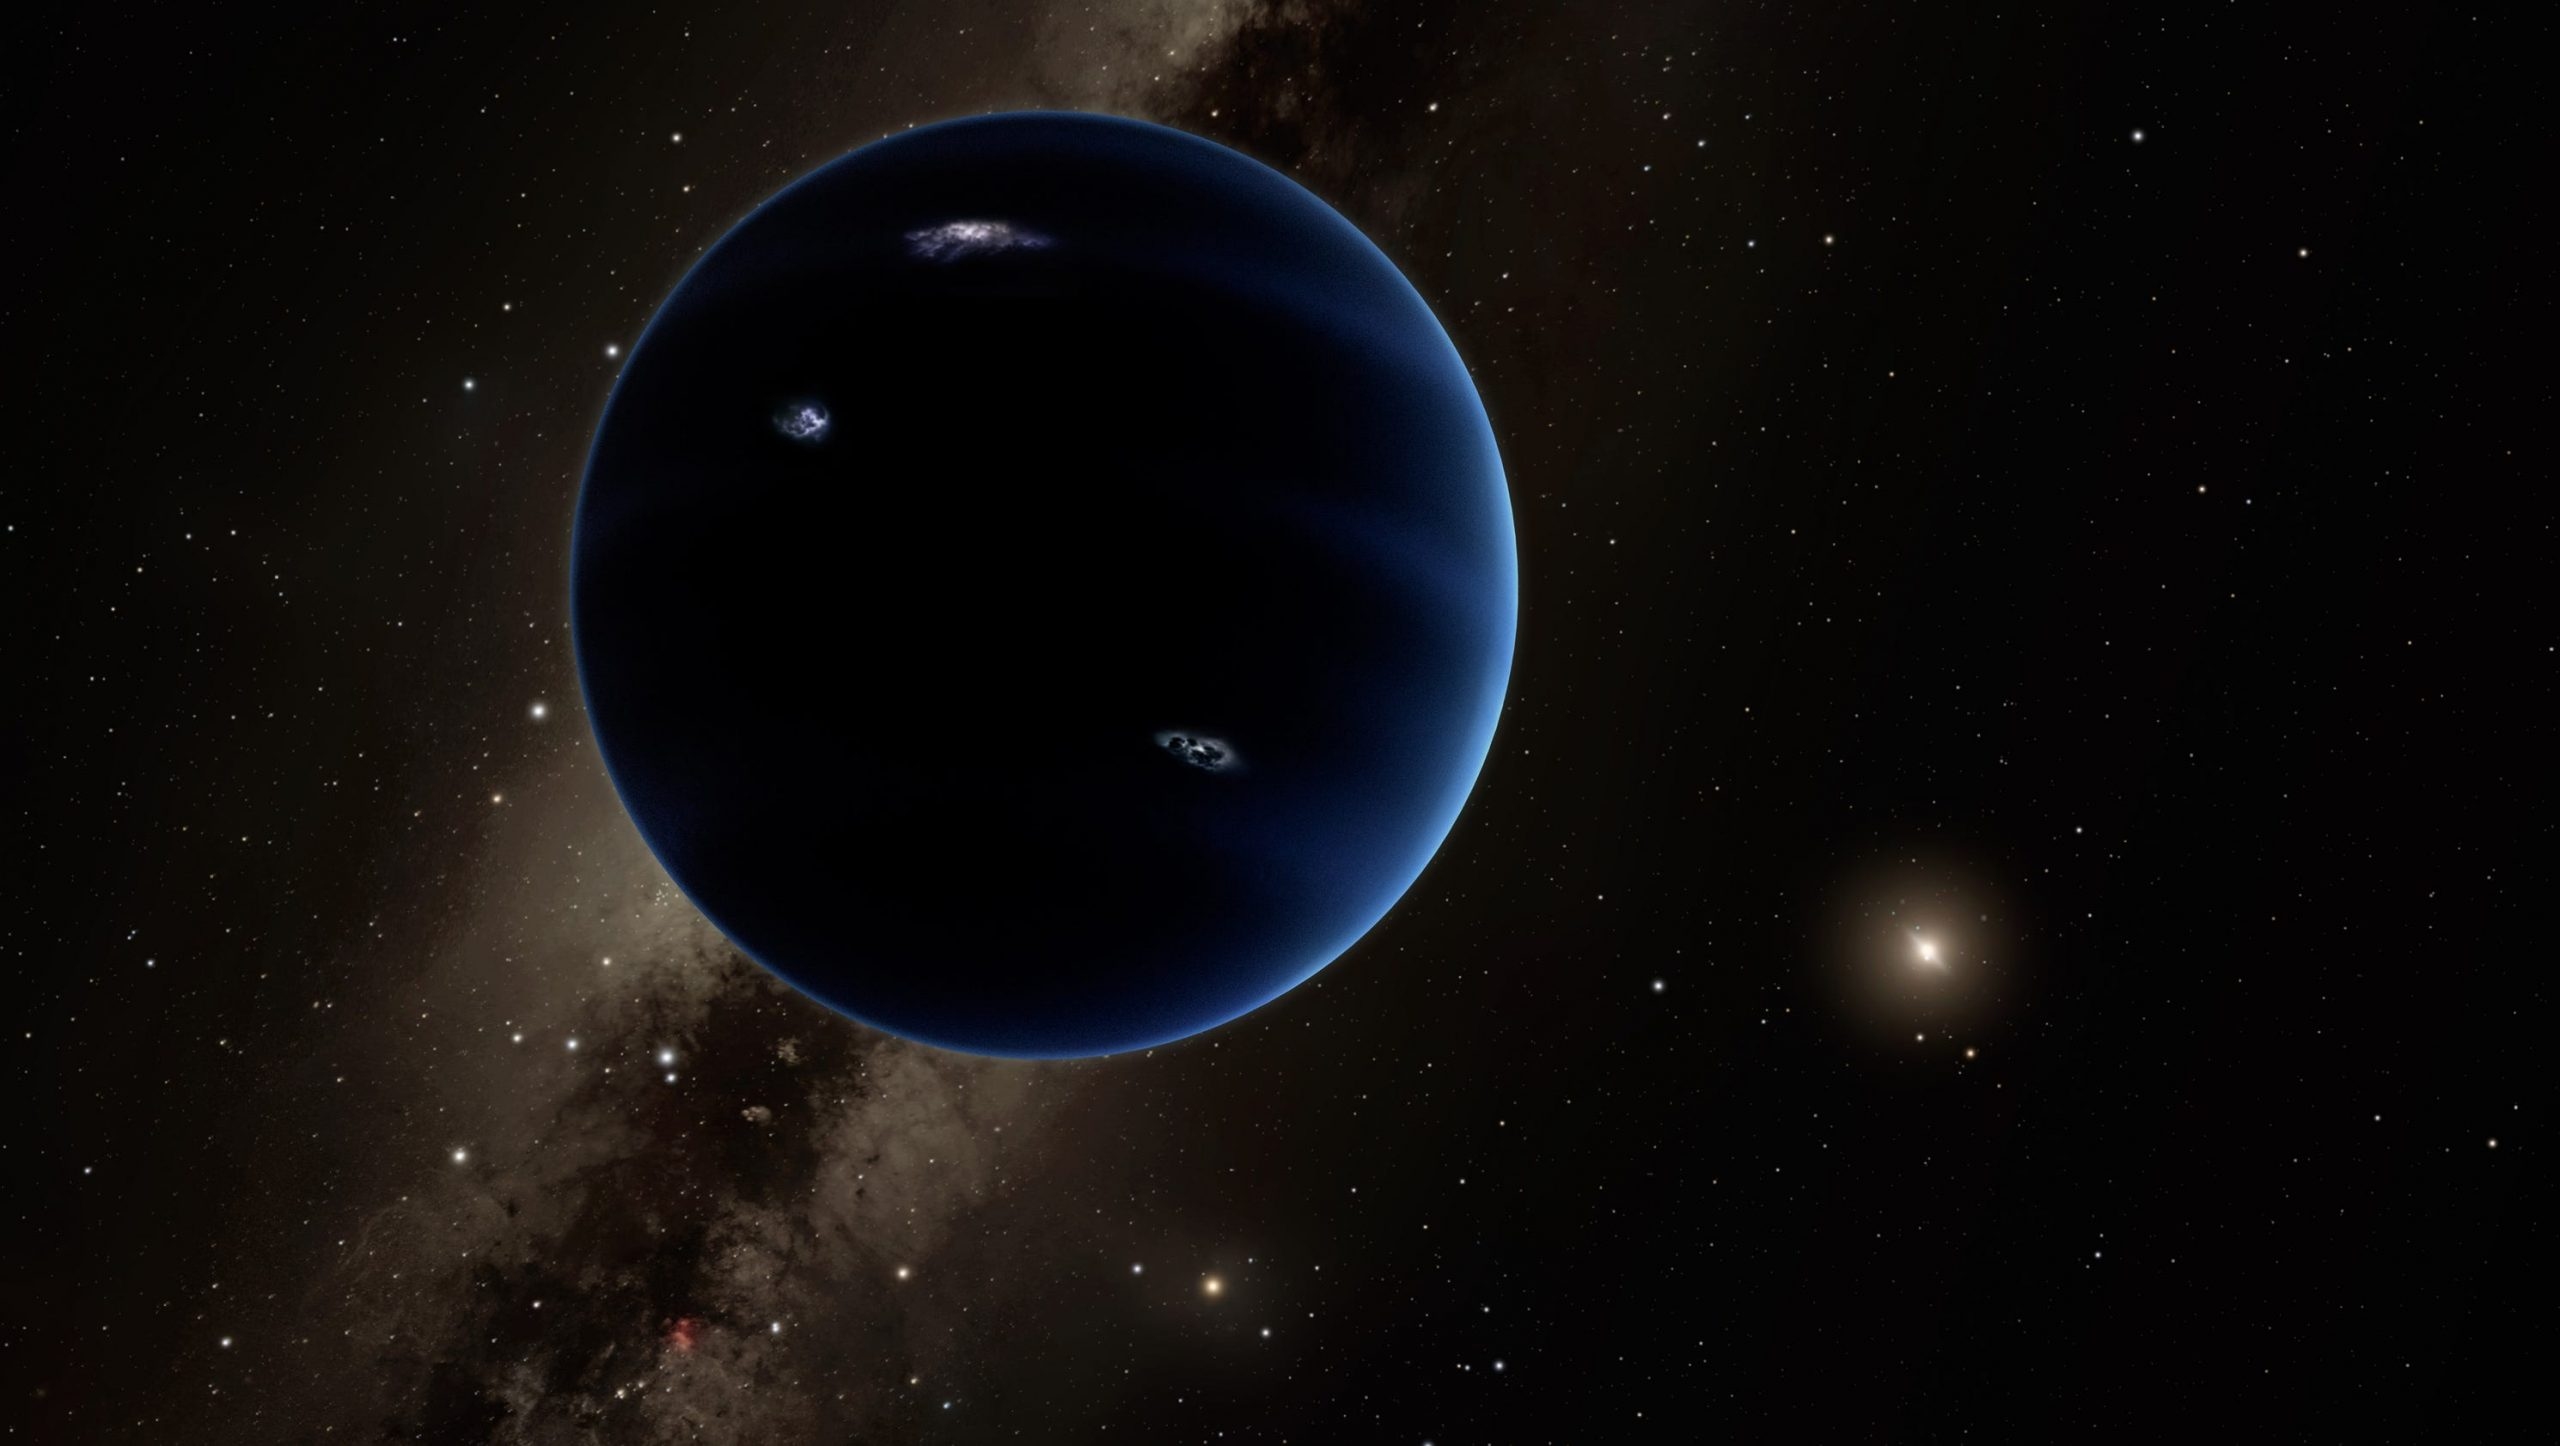 New computer simulations have suggested the existence of a Mars-sized planet behind Neptune. Credit: NASA